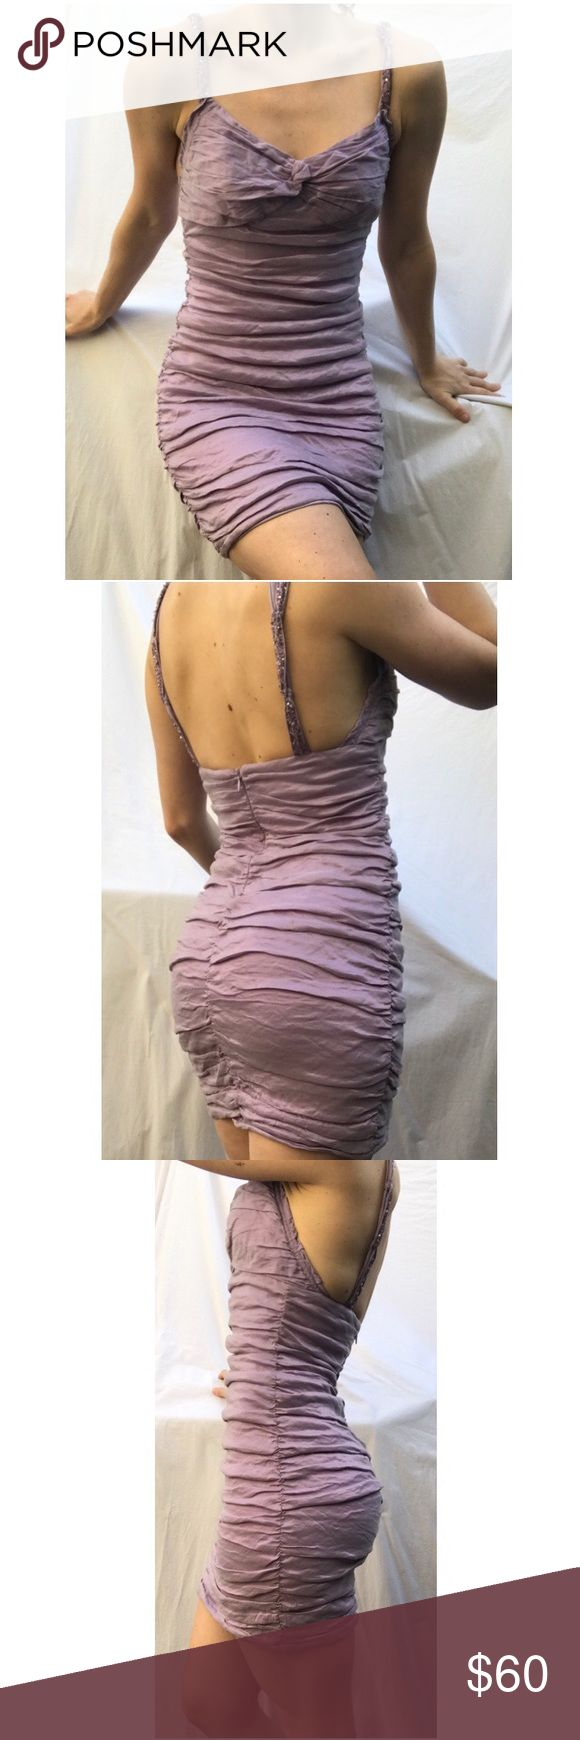 BCBG lilac lavender beaded ruched dress BCBG lilac/ lavender/ purple beaded and embroidered ruched mini dress. Great for formal, date night, club, dance, etc! Ruched style is very flattering! Pretty beading and embroidery! Worn only once to a formal. Light discoloration on the inside due to airbrush tan , absolutely no effect on look from the outside. Can get a photo for that asap! Dance the night away in this mini BCBG Dresses